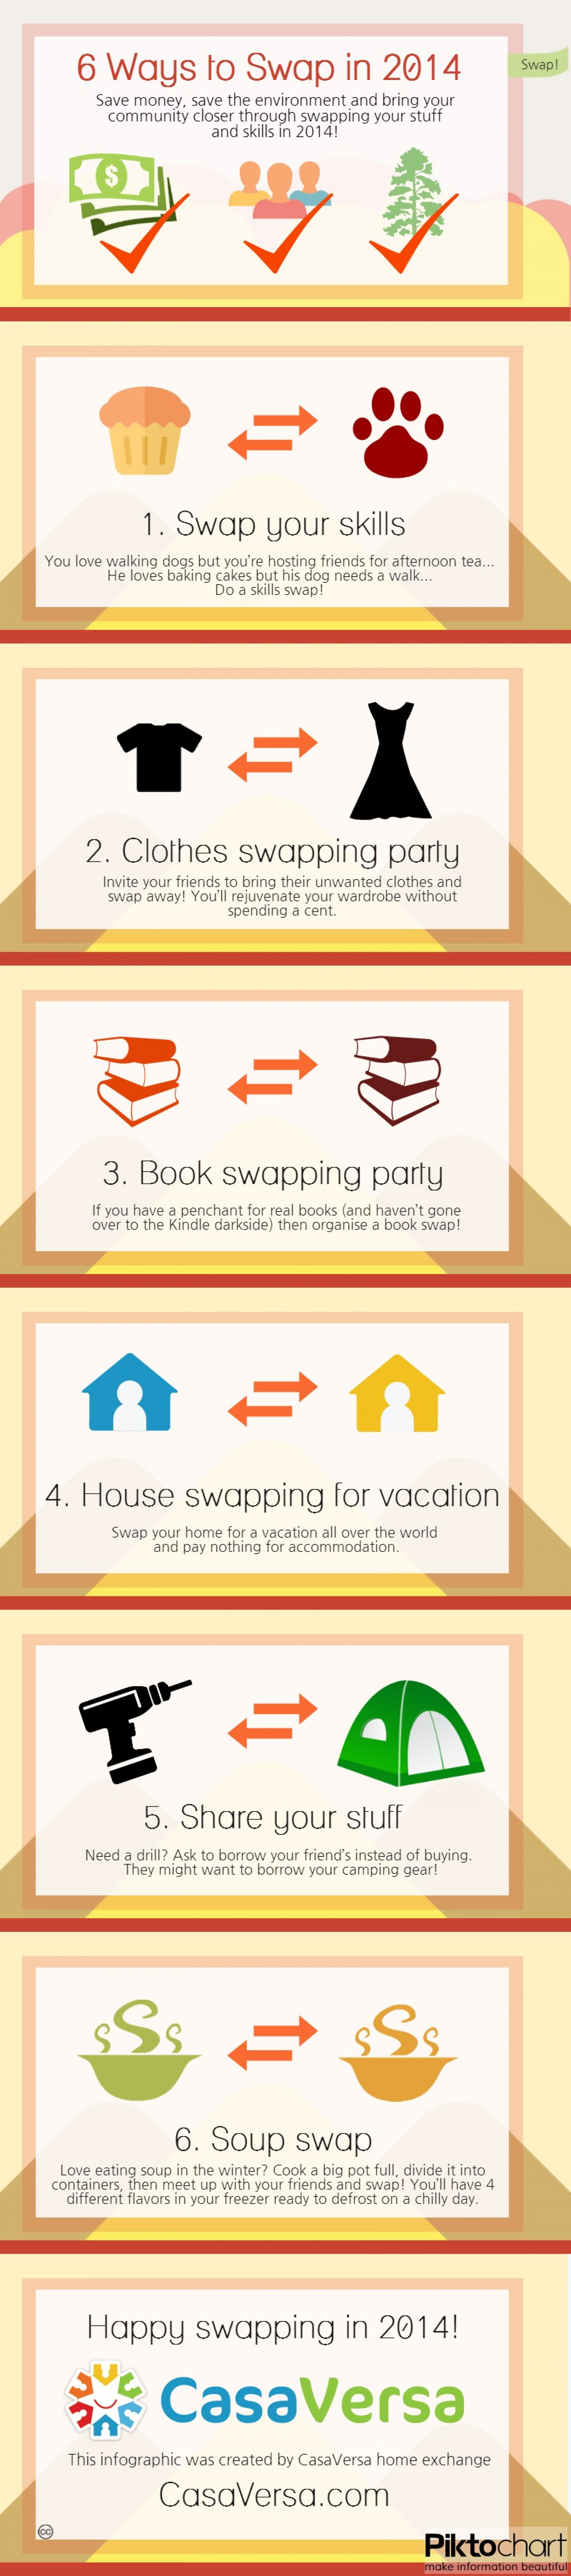 6 Ways to Swap in 2014 Infographic